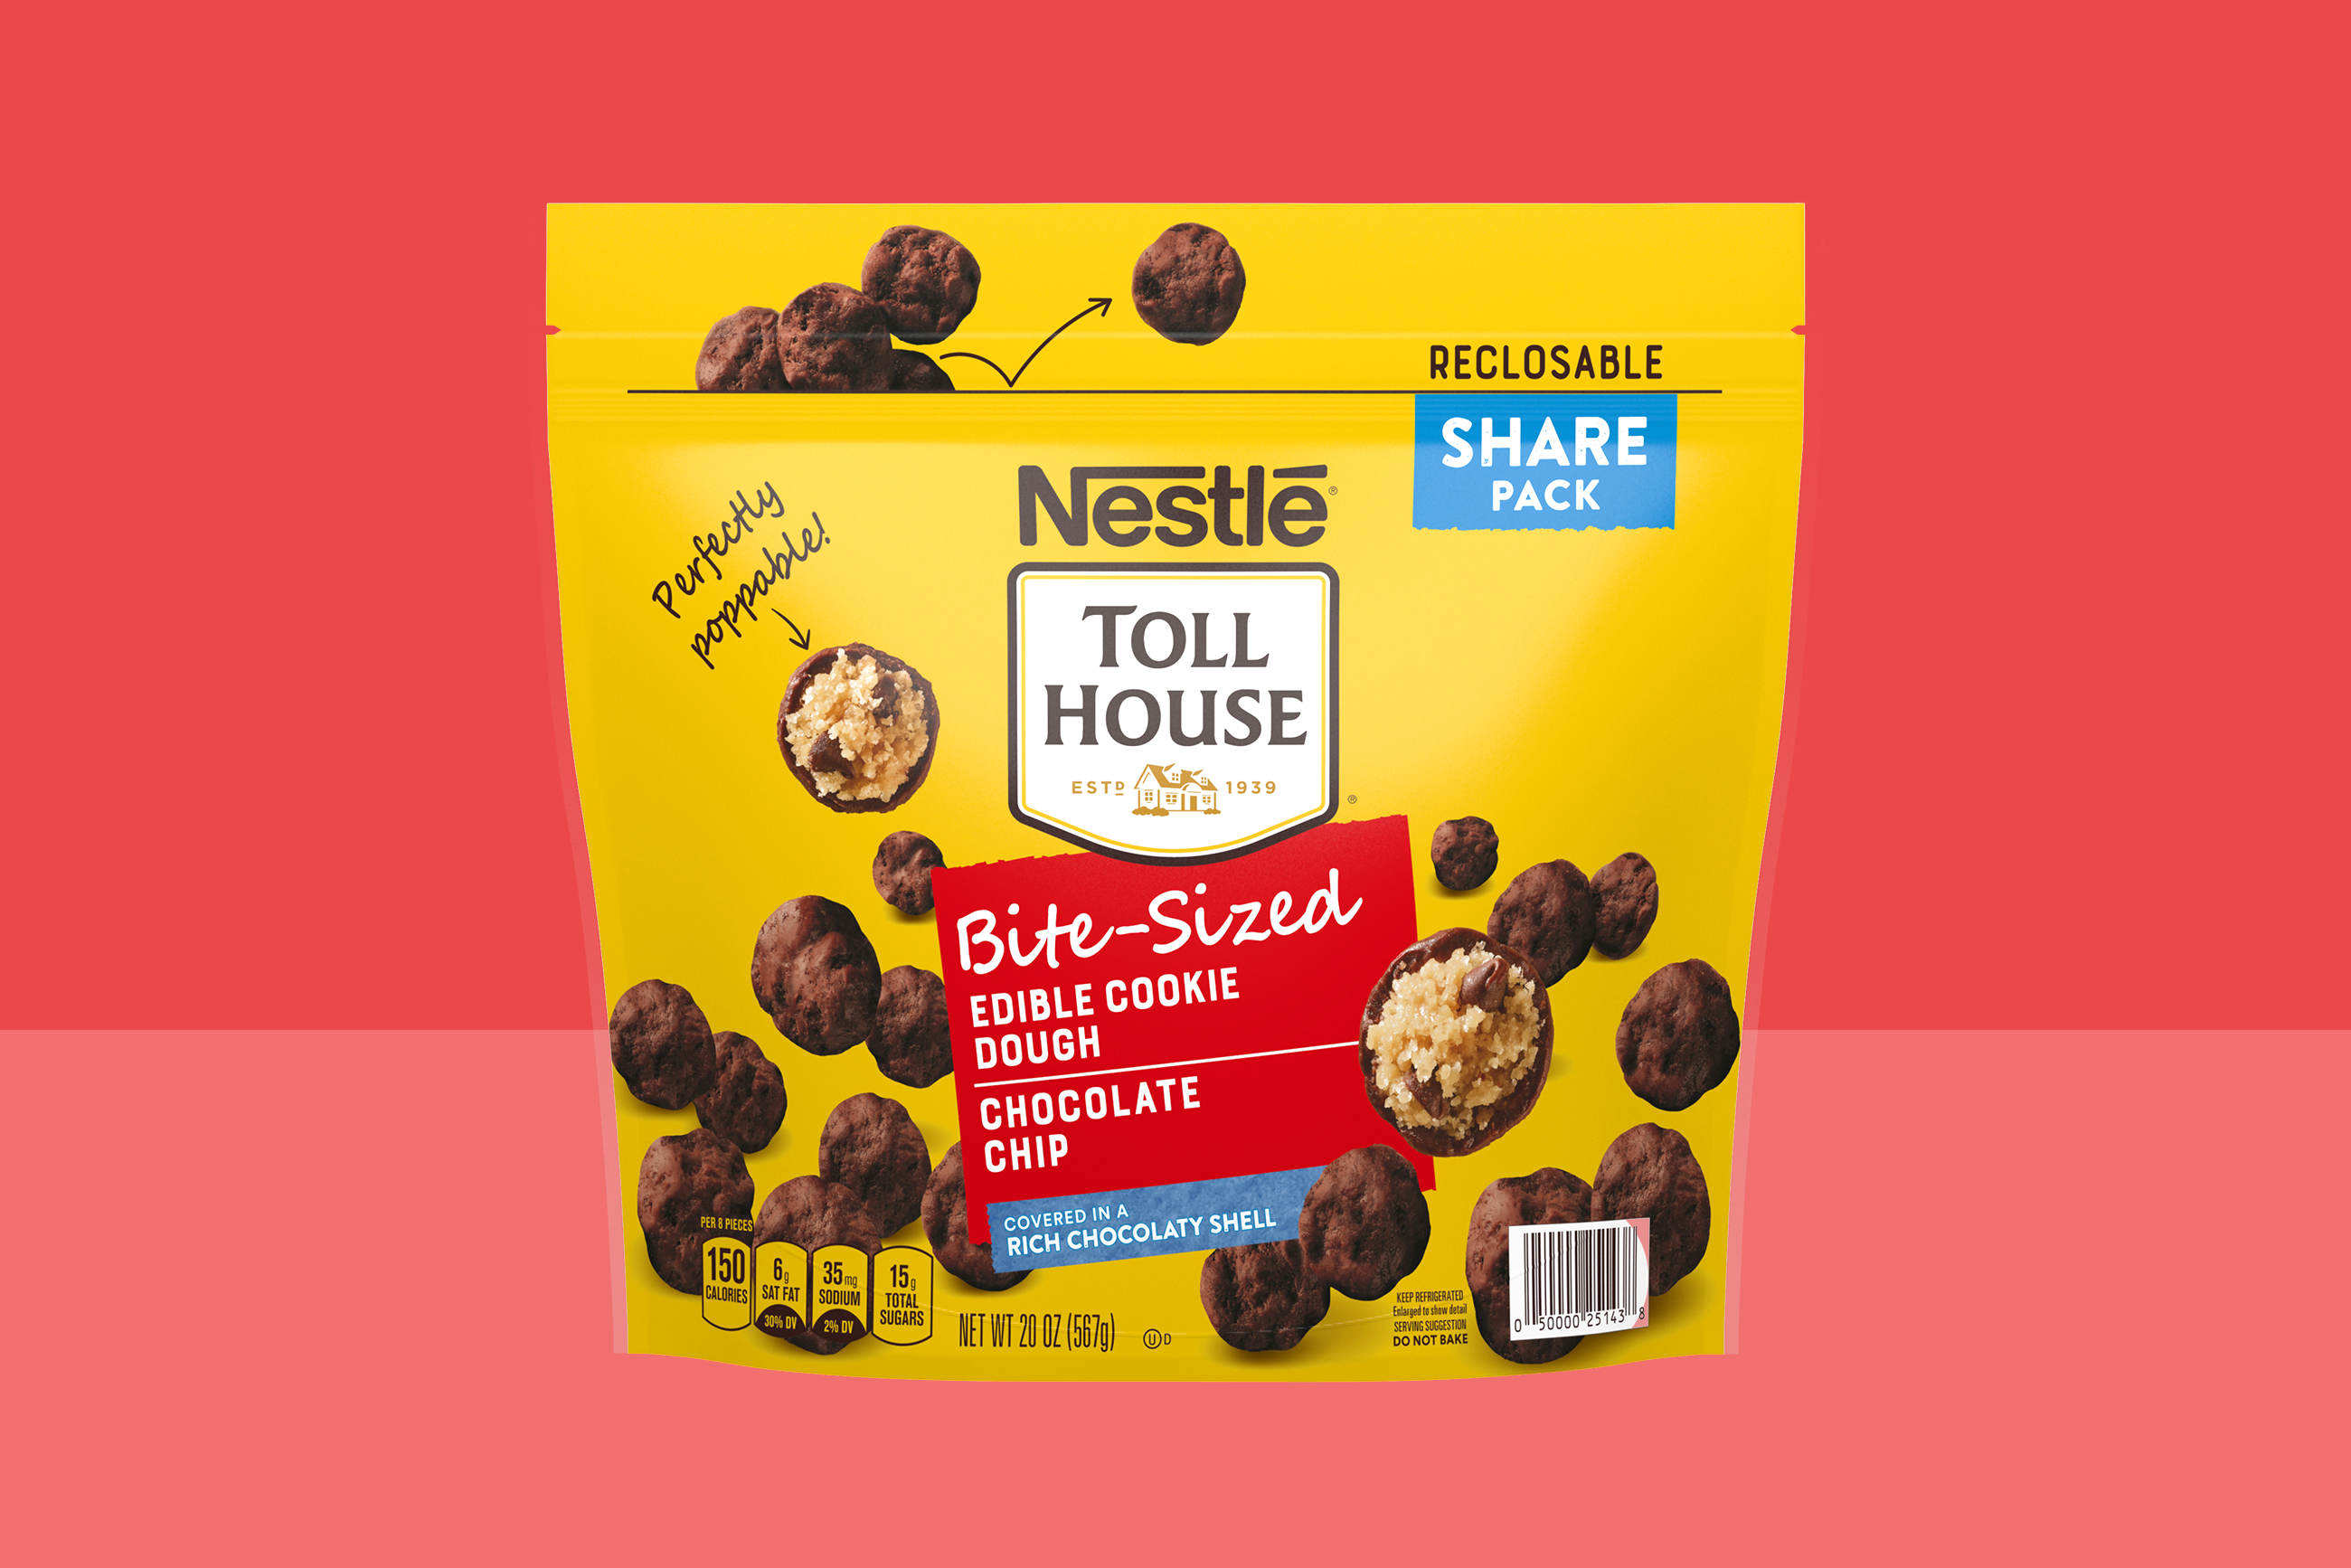 Nestle Toll House Bite-Sized Chocolate Chip Edible Cookie Dough on a two-tone background